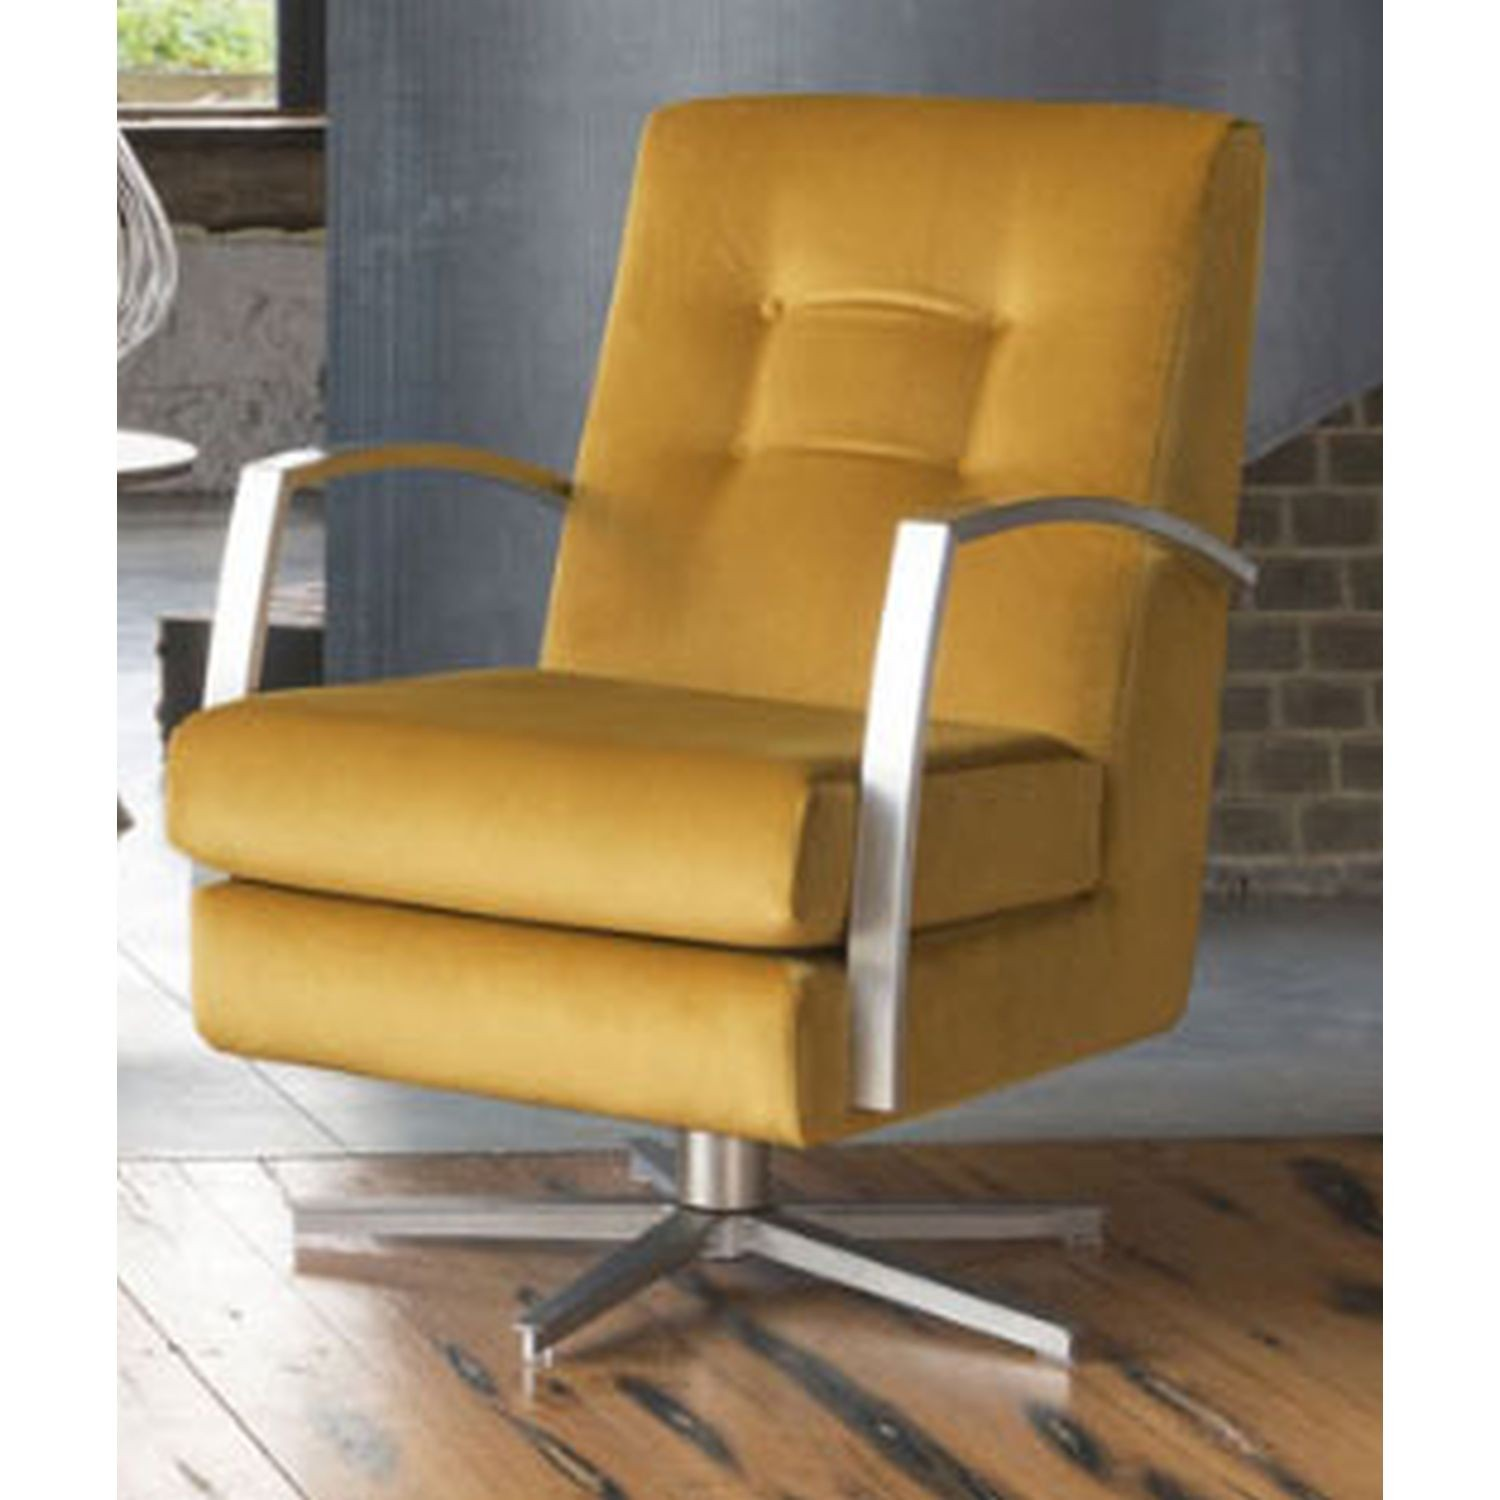 Peachy Oslo Swivel Fabric Chair Camellatalisay Diy Chair Ideas Camellatalisaycom